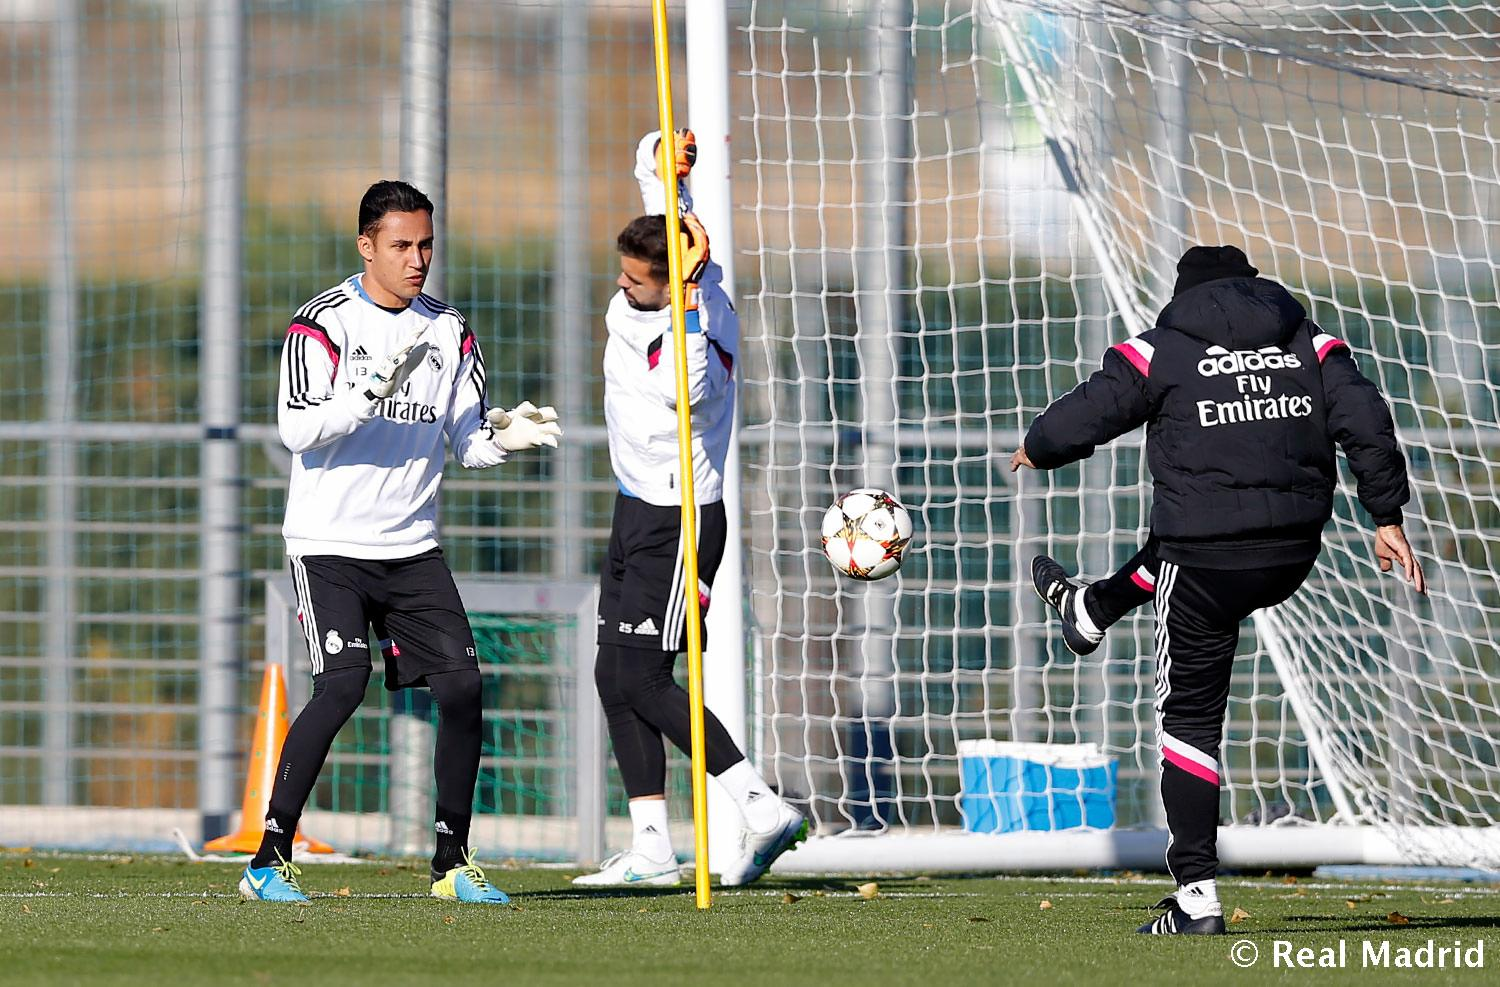 Real Madrid - Entrenamiento del Real Madrid - 07-12-2014